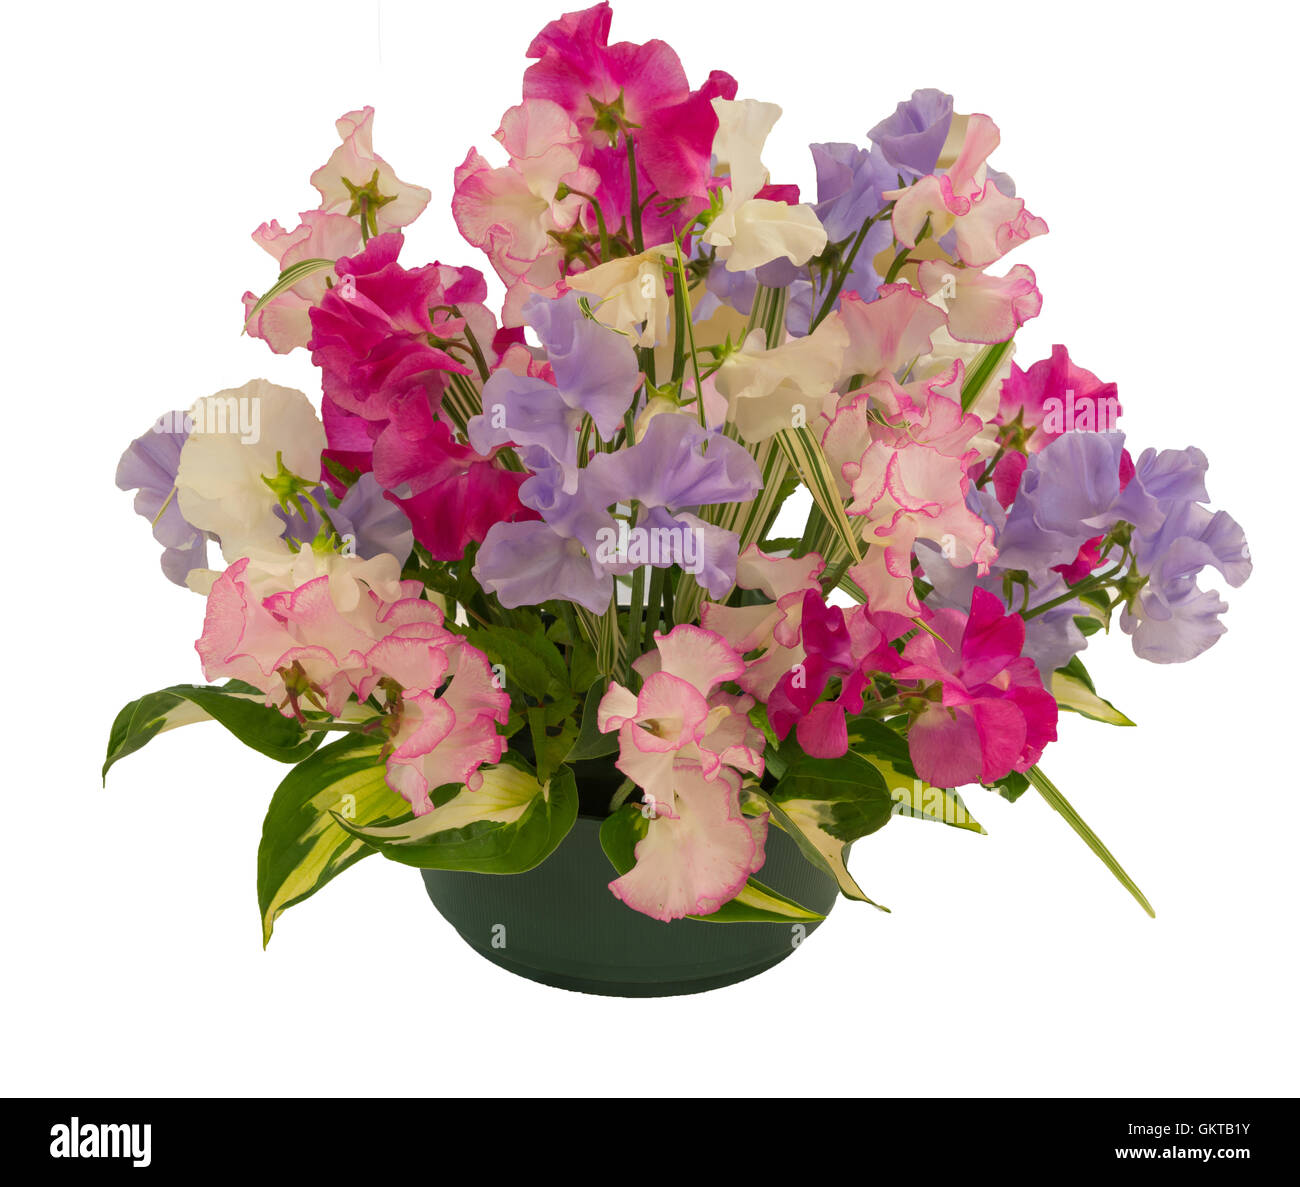 Sweet Pea flower arrangement on a white background - Stock Image